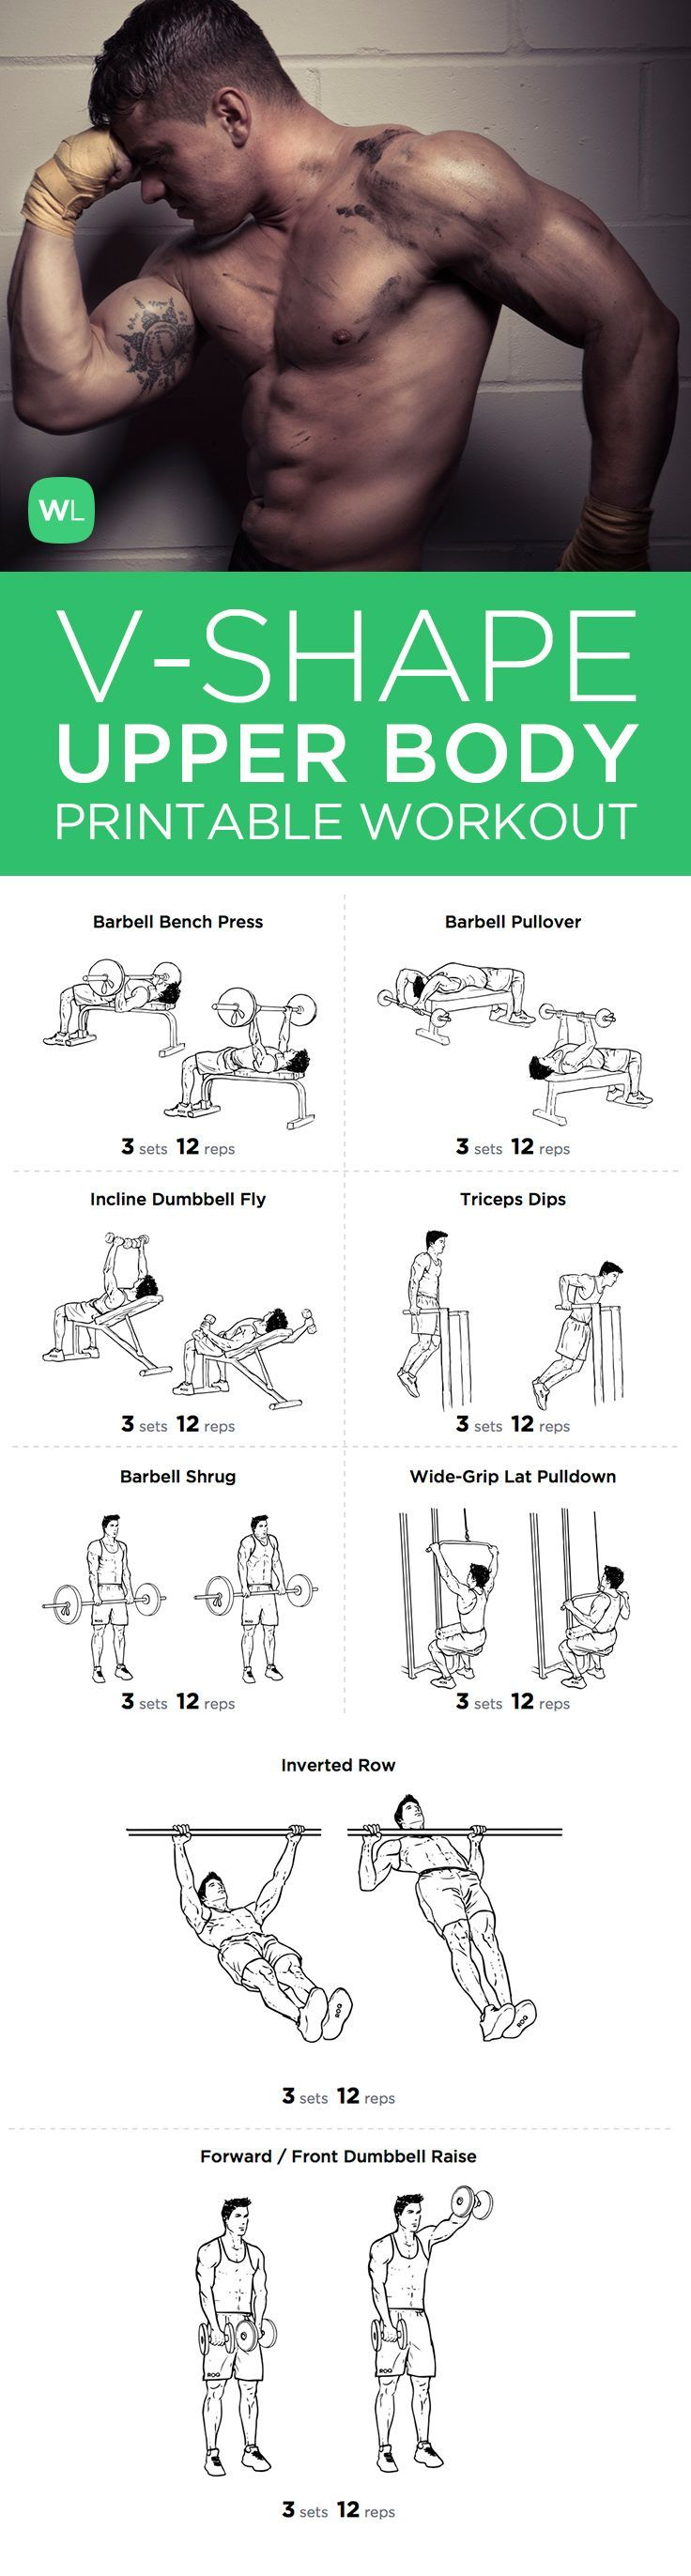 V-Shape Upper Body Printable Workout Plan for Chest ...